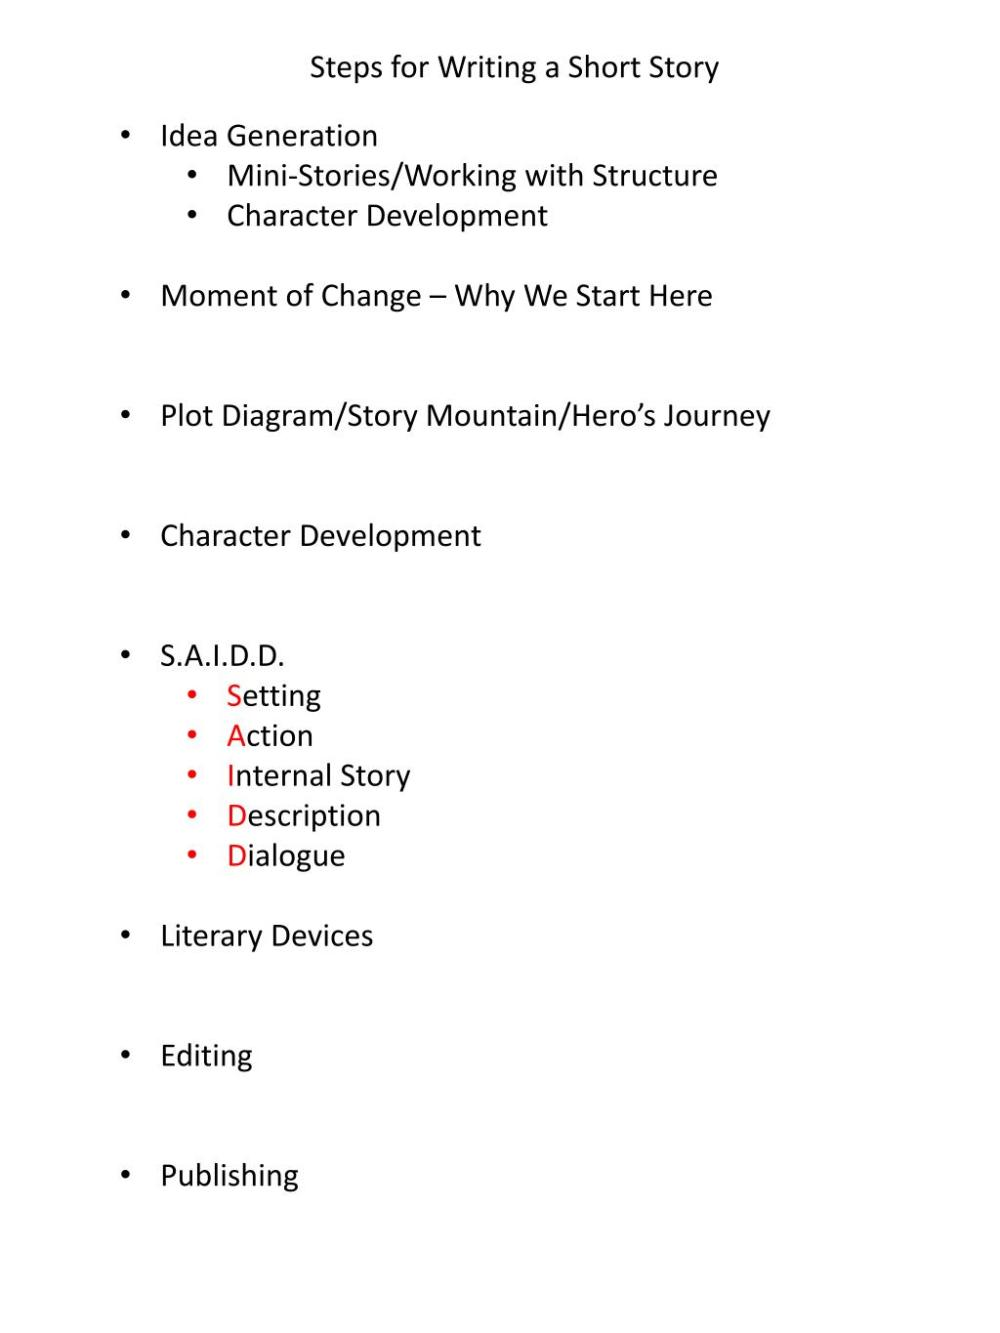 medium resolution of  character development moment of change why we start here plot diagram story mountain hero s journey character development s a i d d setting